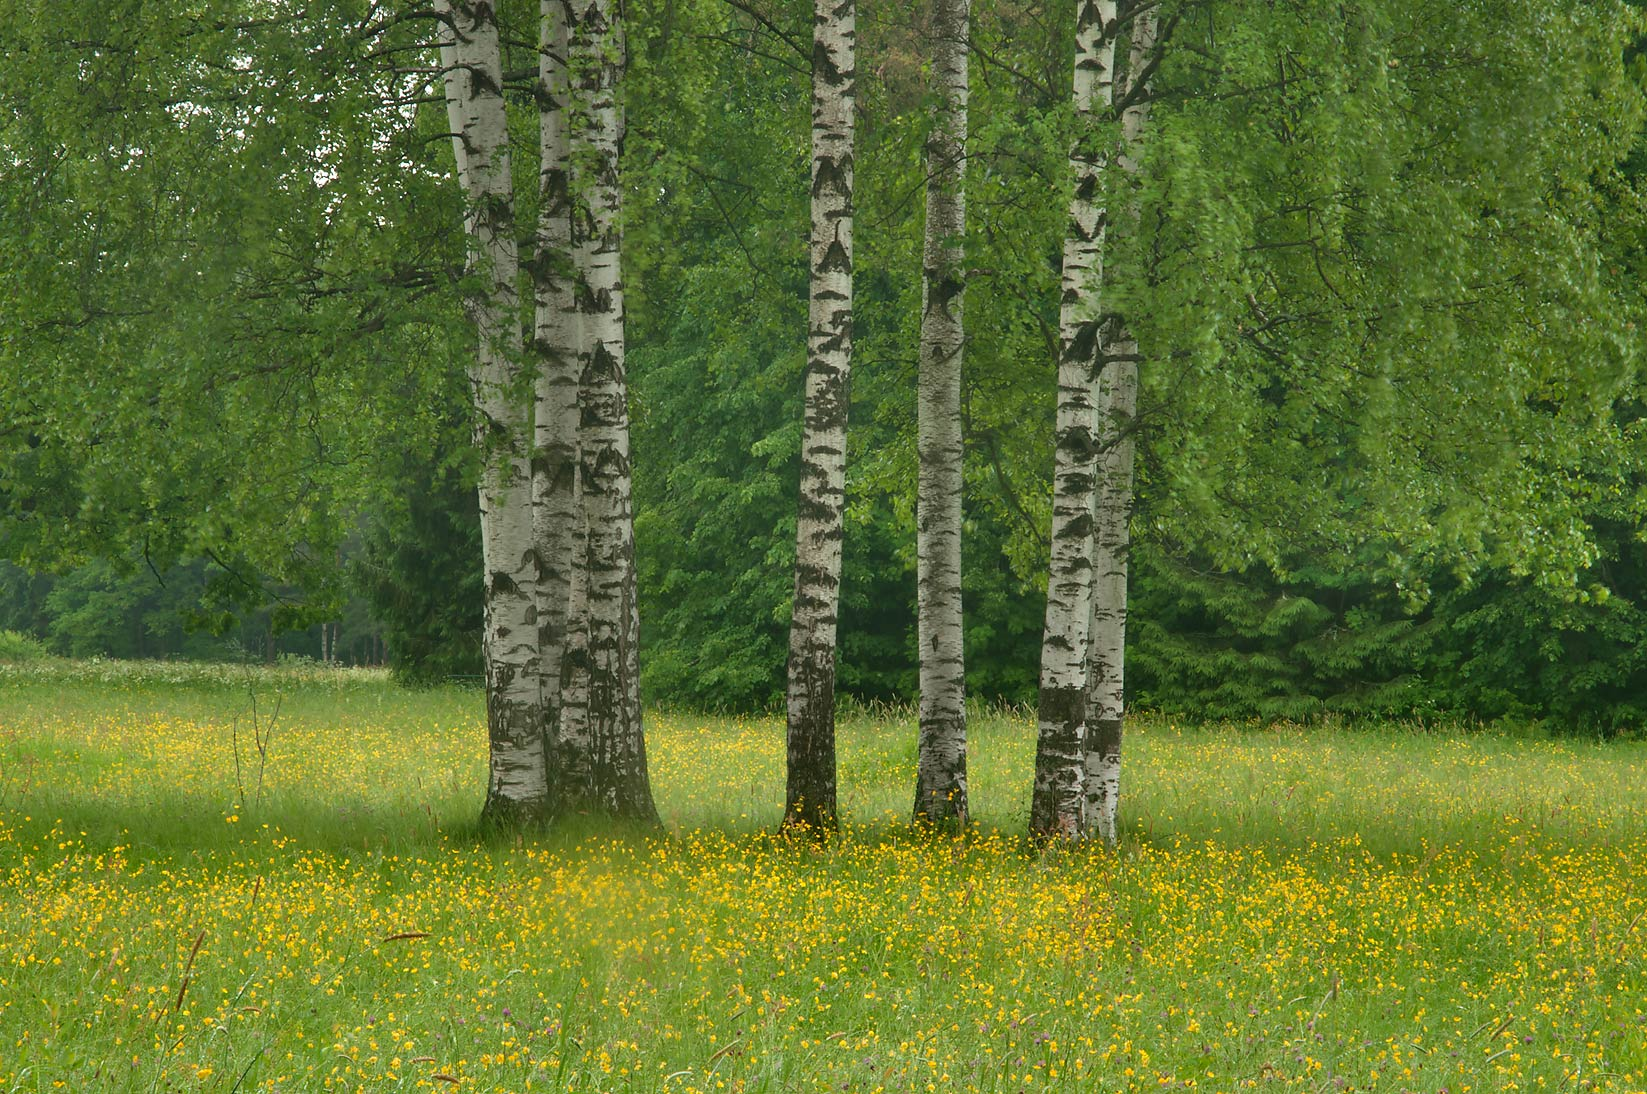 Birch trees in Pavlovsk Park. Pavlovsk, a suburb of St.Petersburg, Russia